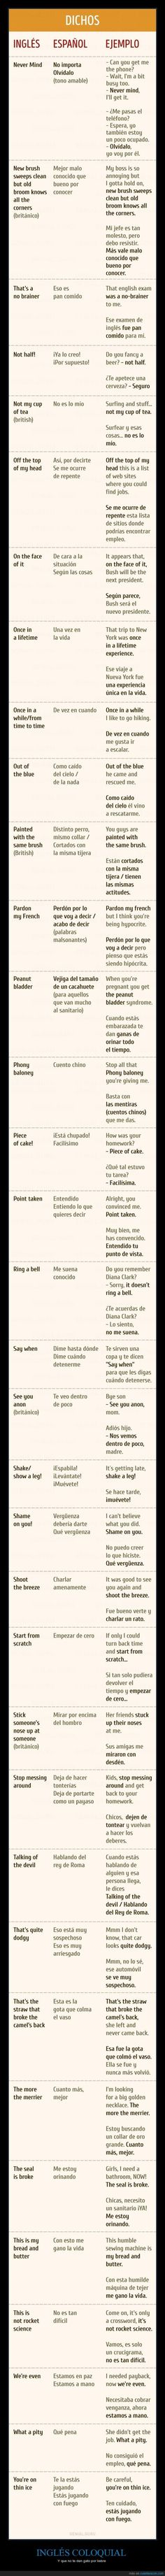 Expresiones coloquiales para hablar inglés al natural - Y que no te den gato por liebre English Resources, English Tips, Spanish English, English Phrases, English Idioms, English Class, English Words, English Lessons, English Vocabulary